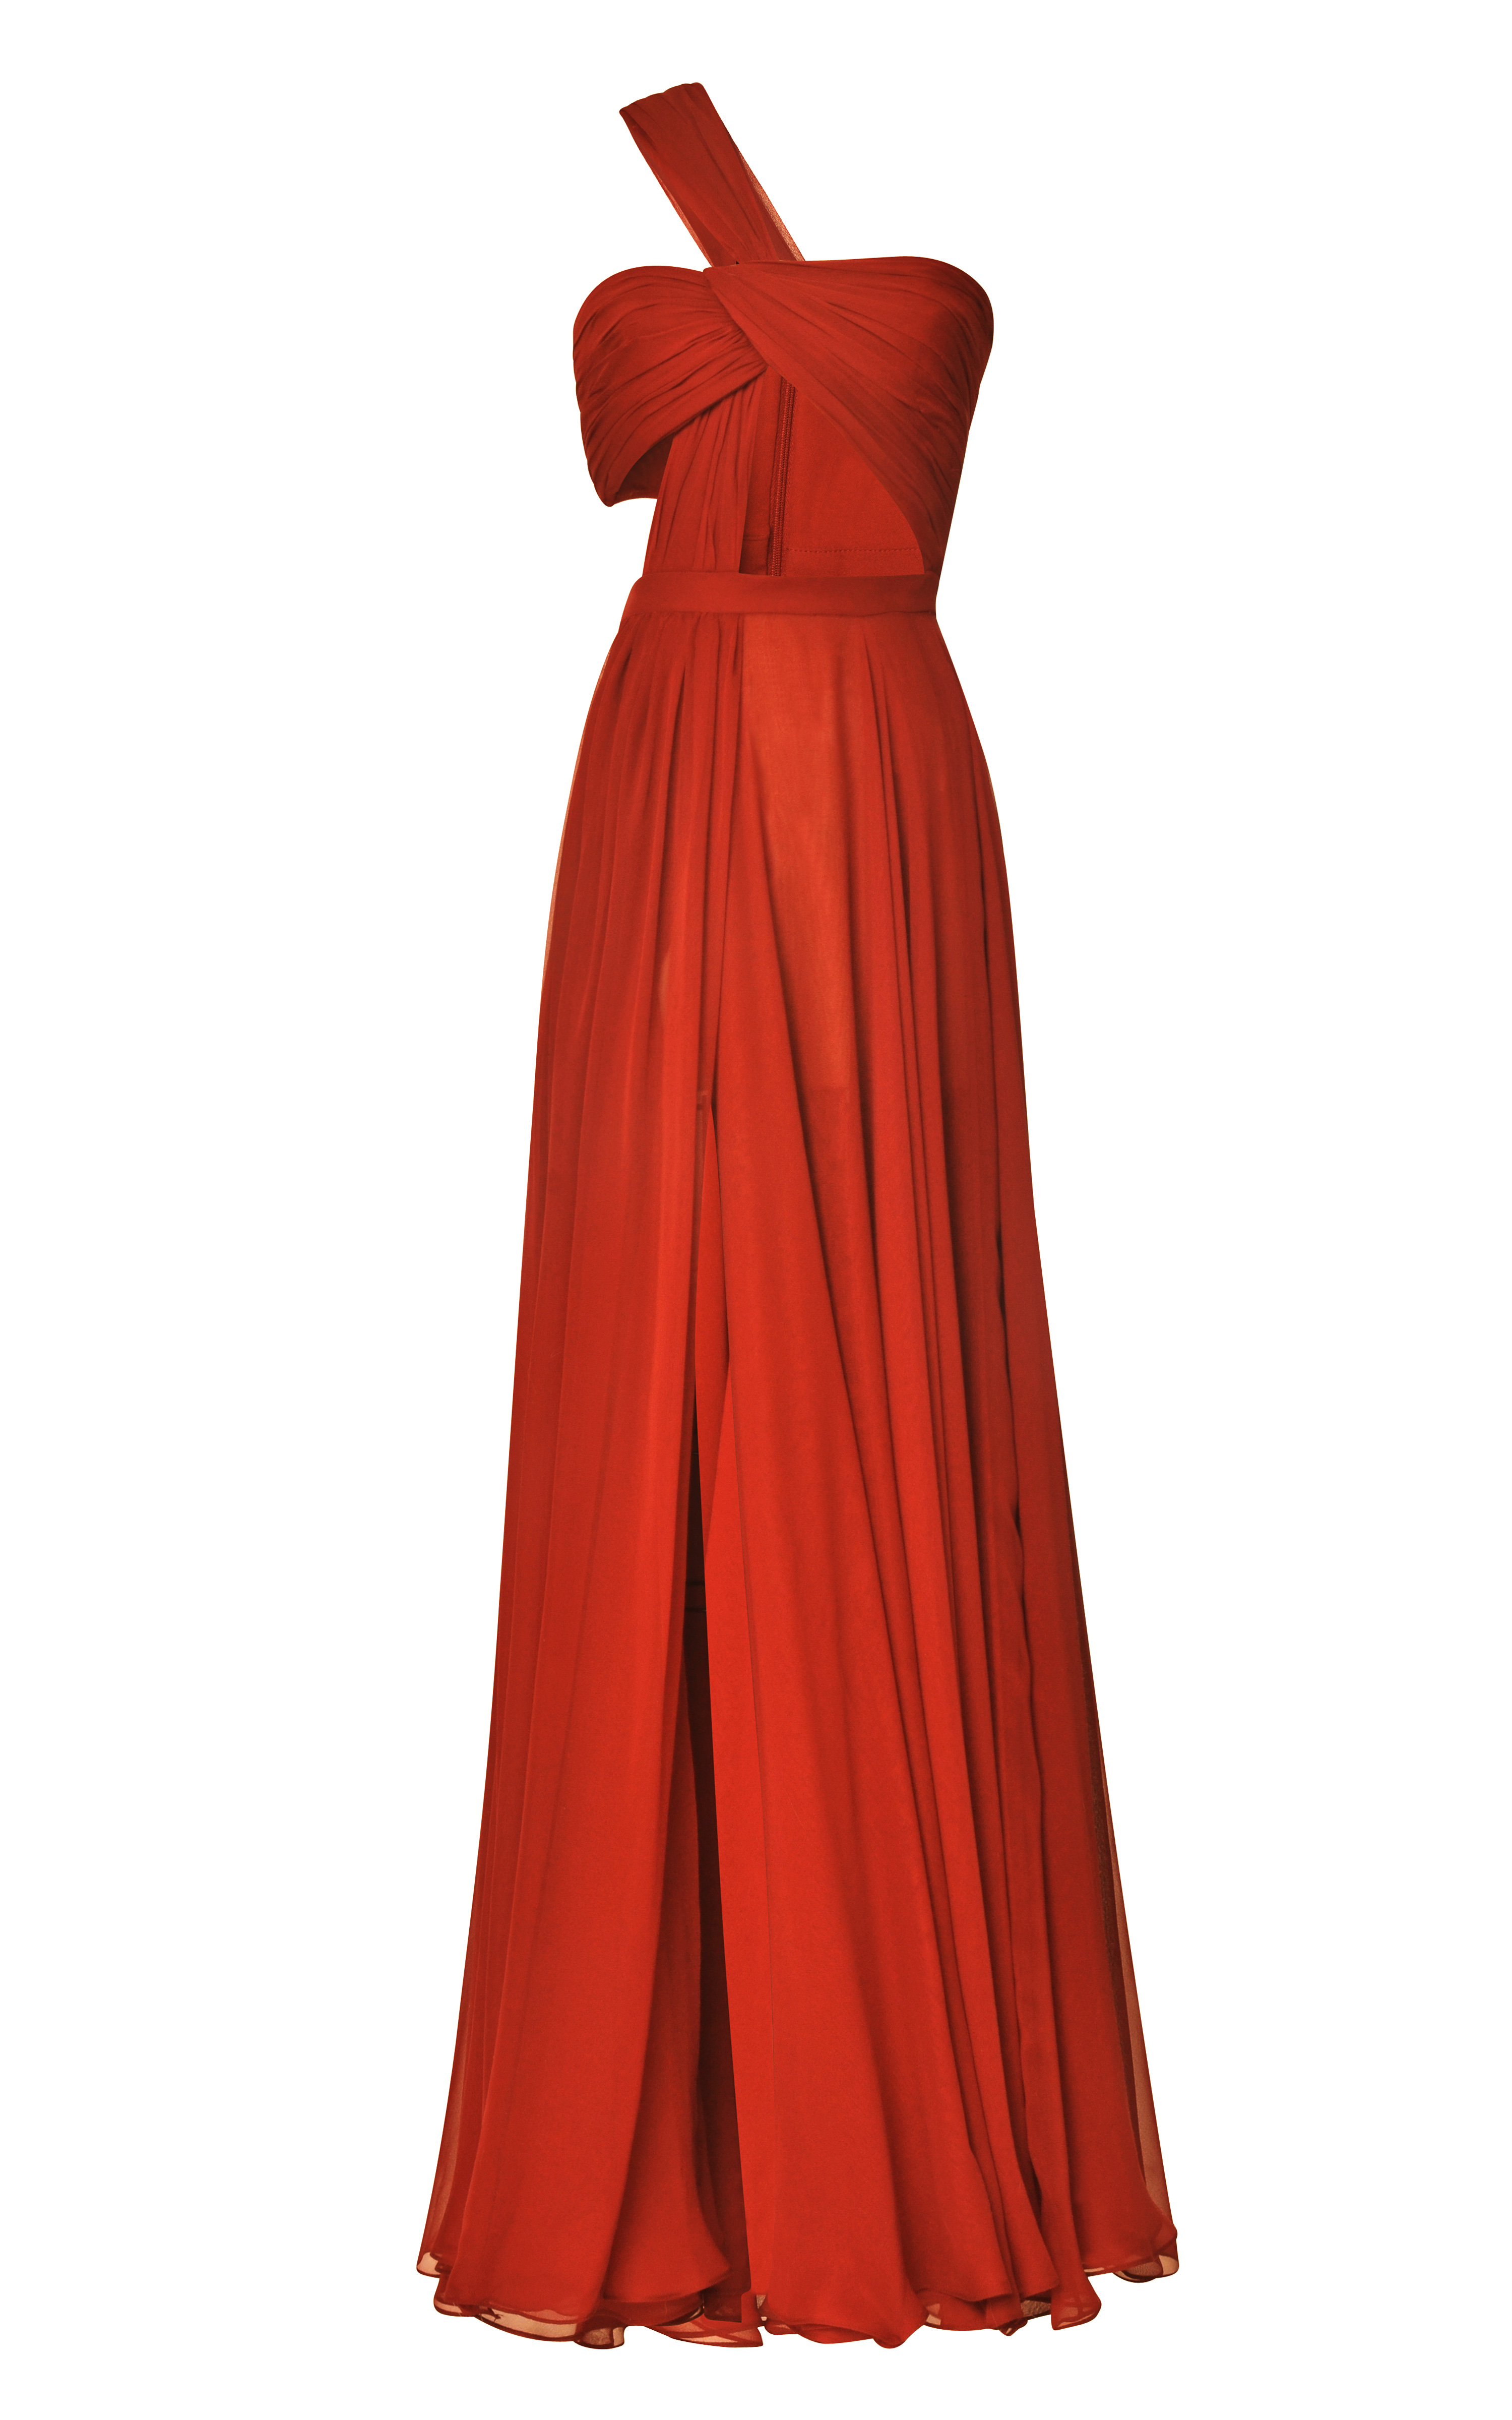 Bordeaux Hand-Draped Chiffon Gown by Prabal Gurung - Moda Operandi